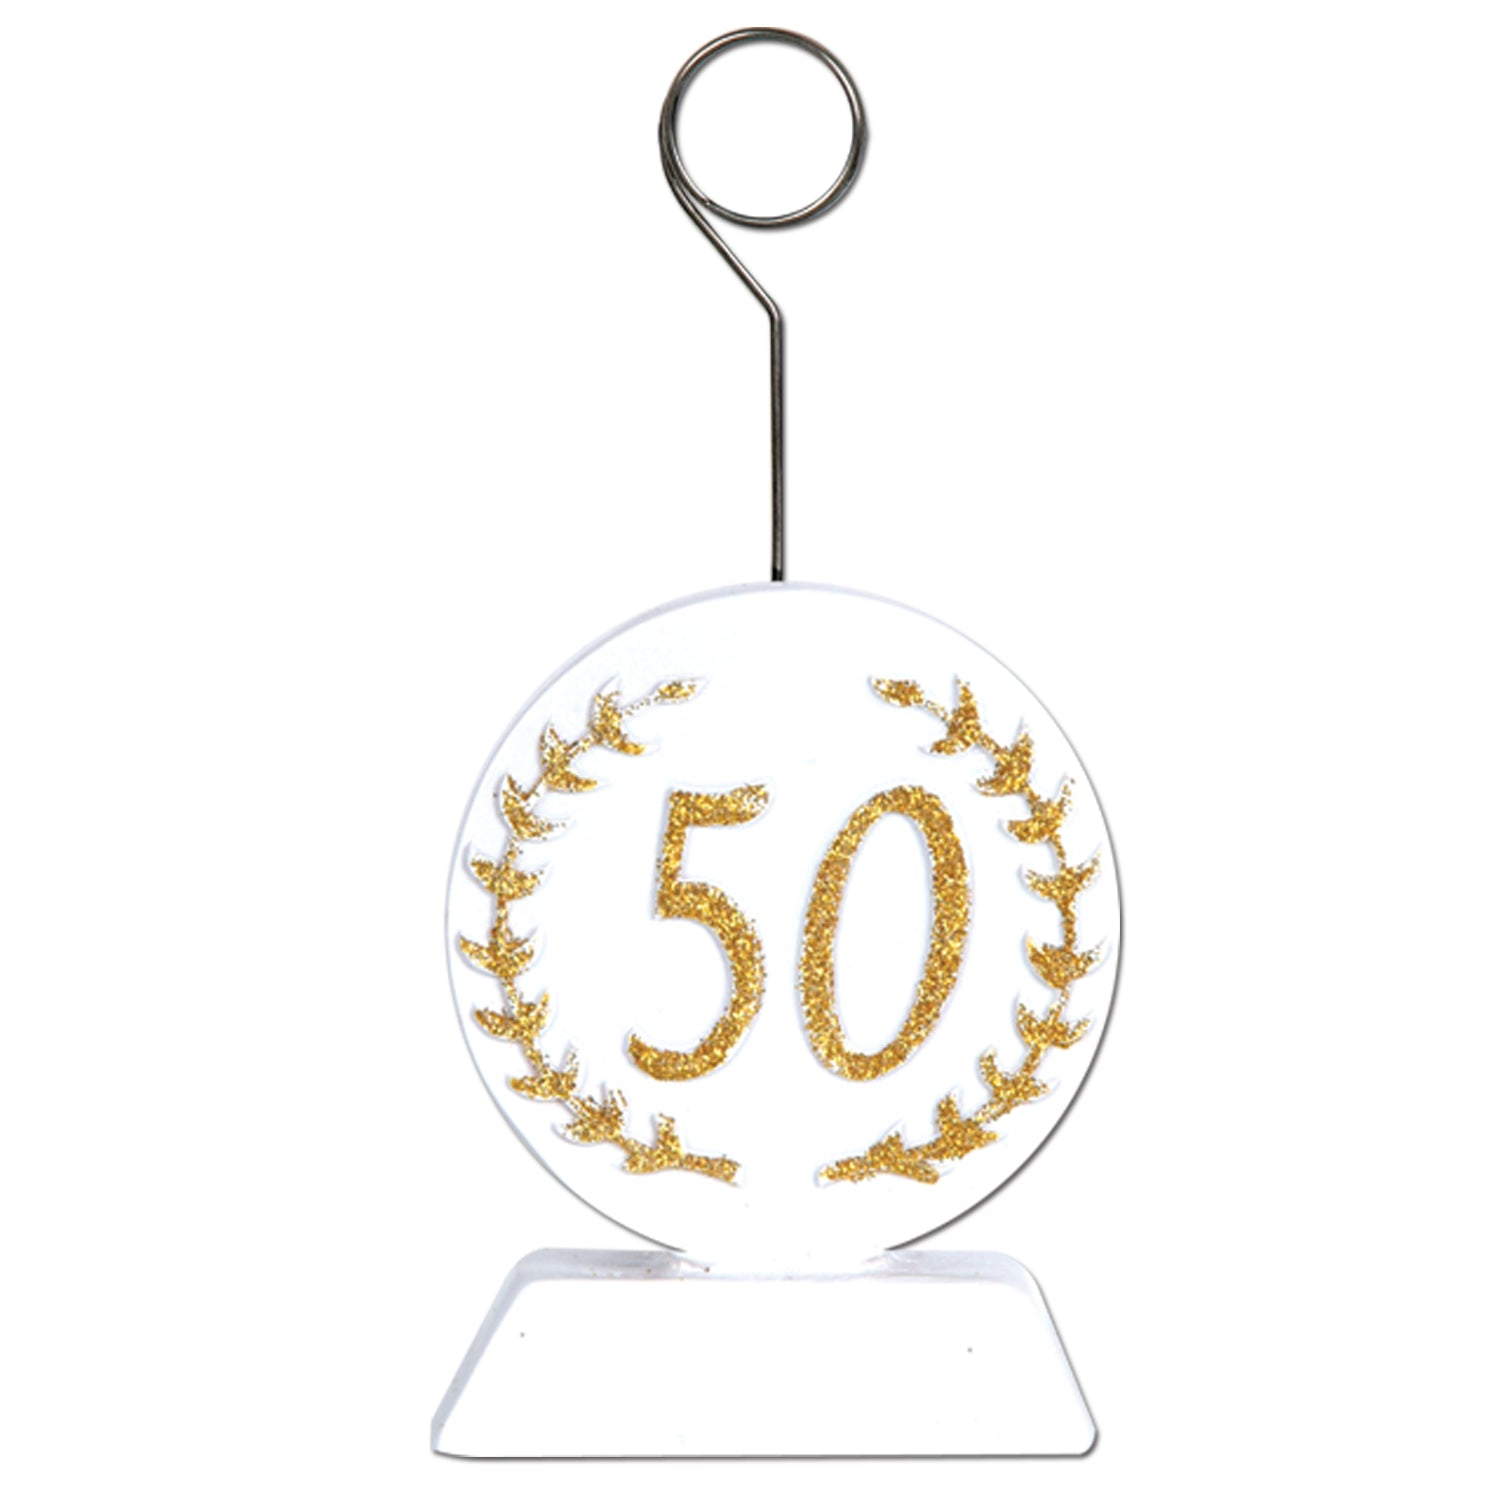 Glittered 50 Photo/Balloon Holder, gold & white by Beistle - Anniversary Theme Decorations